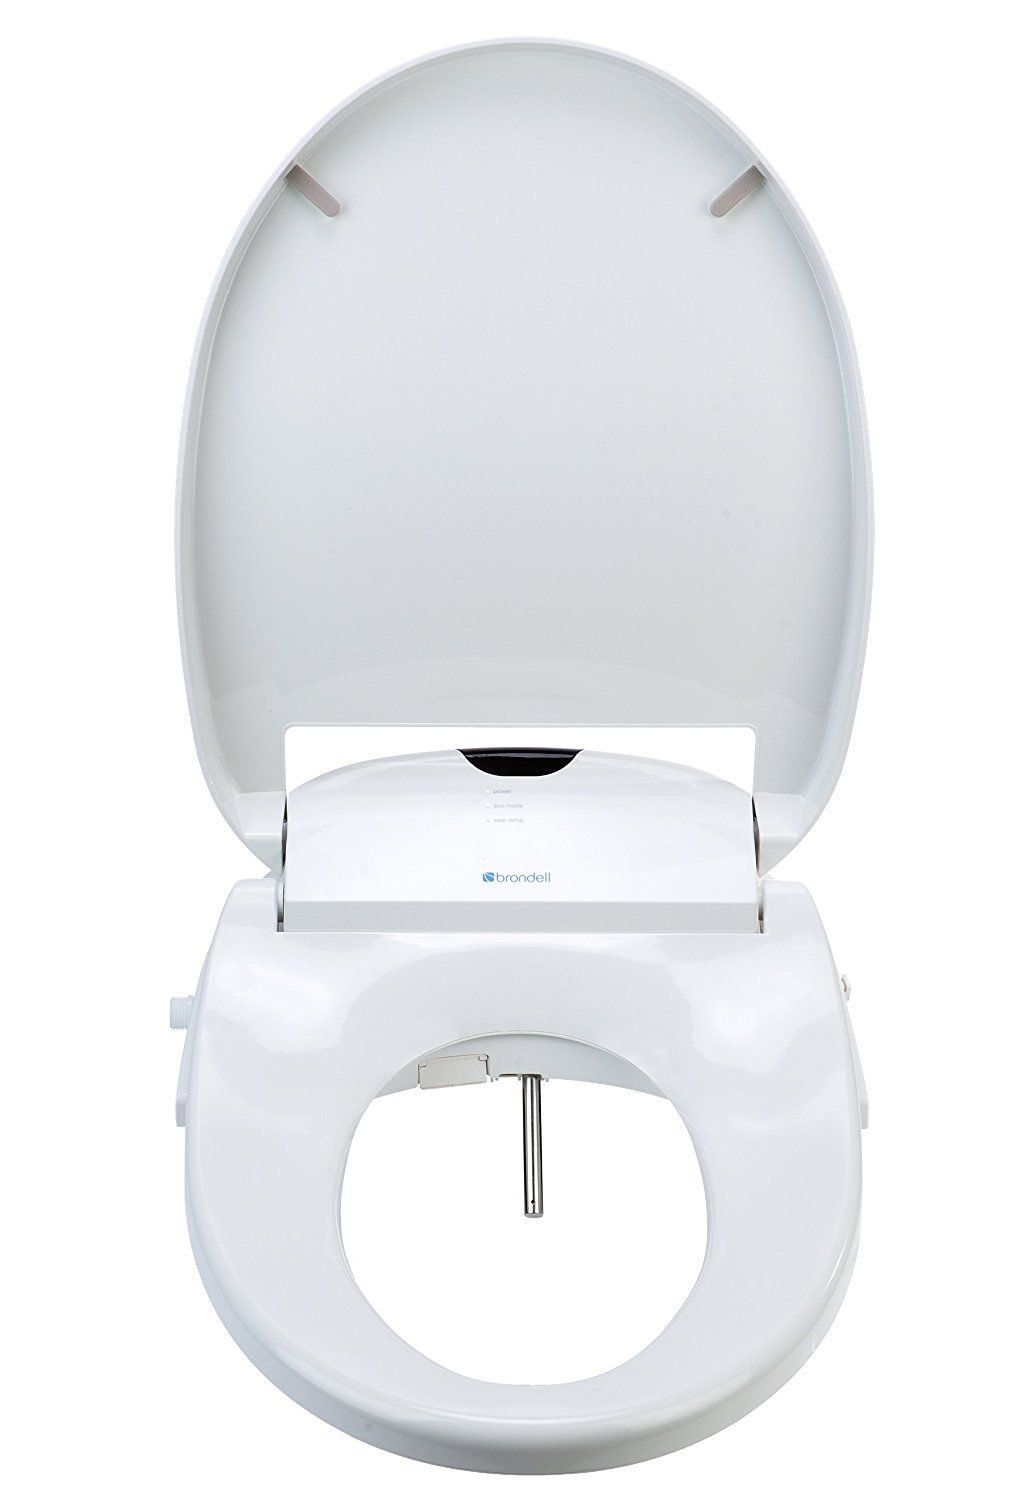 Best Bidet Toilet Seat Reviews For 2020 With Images Toilet